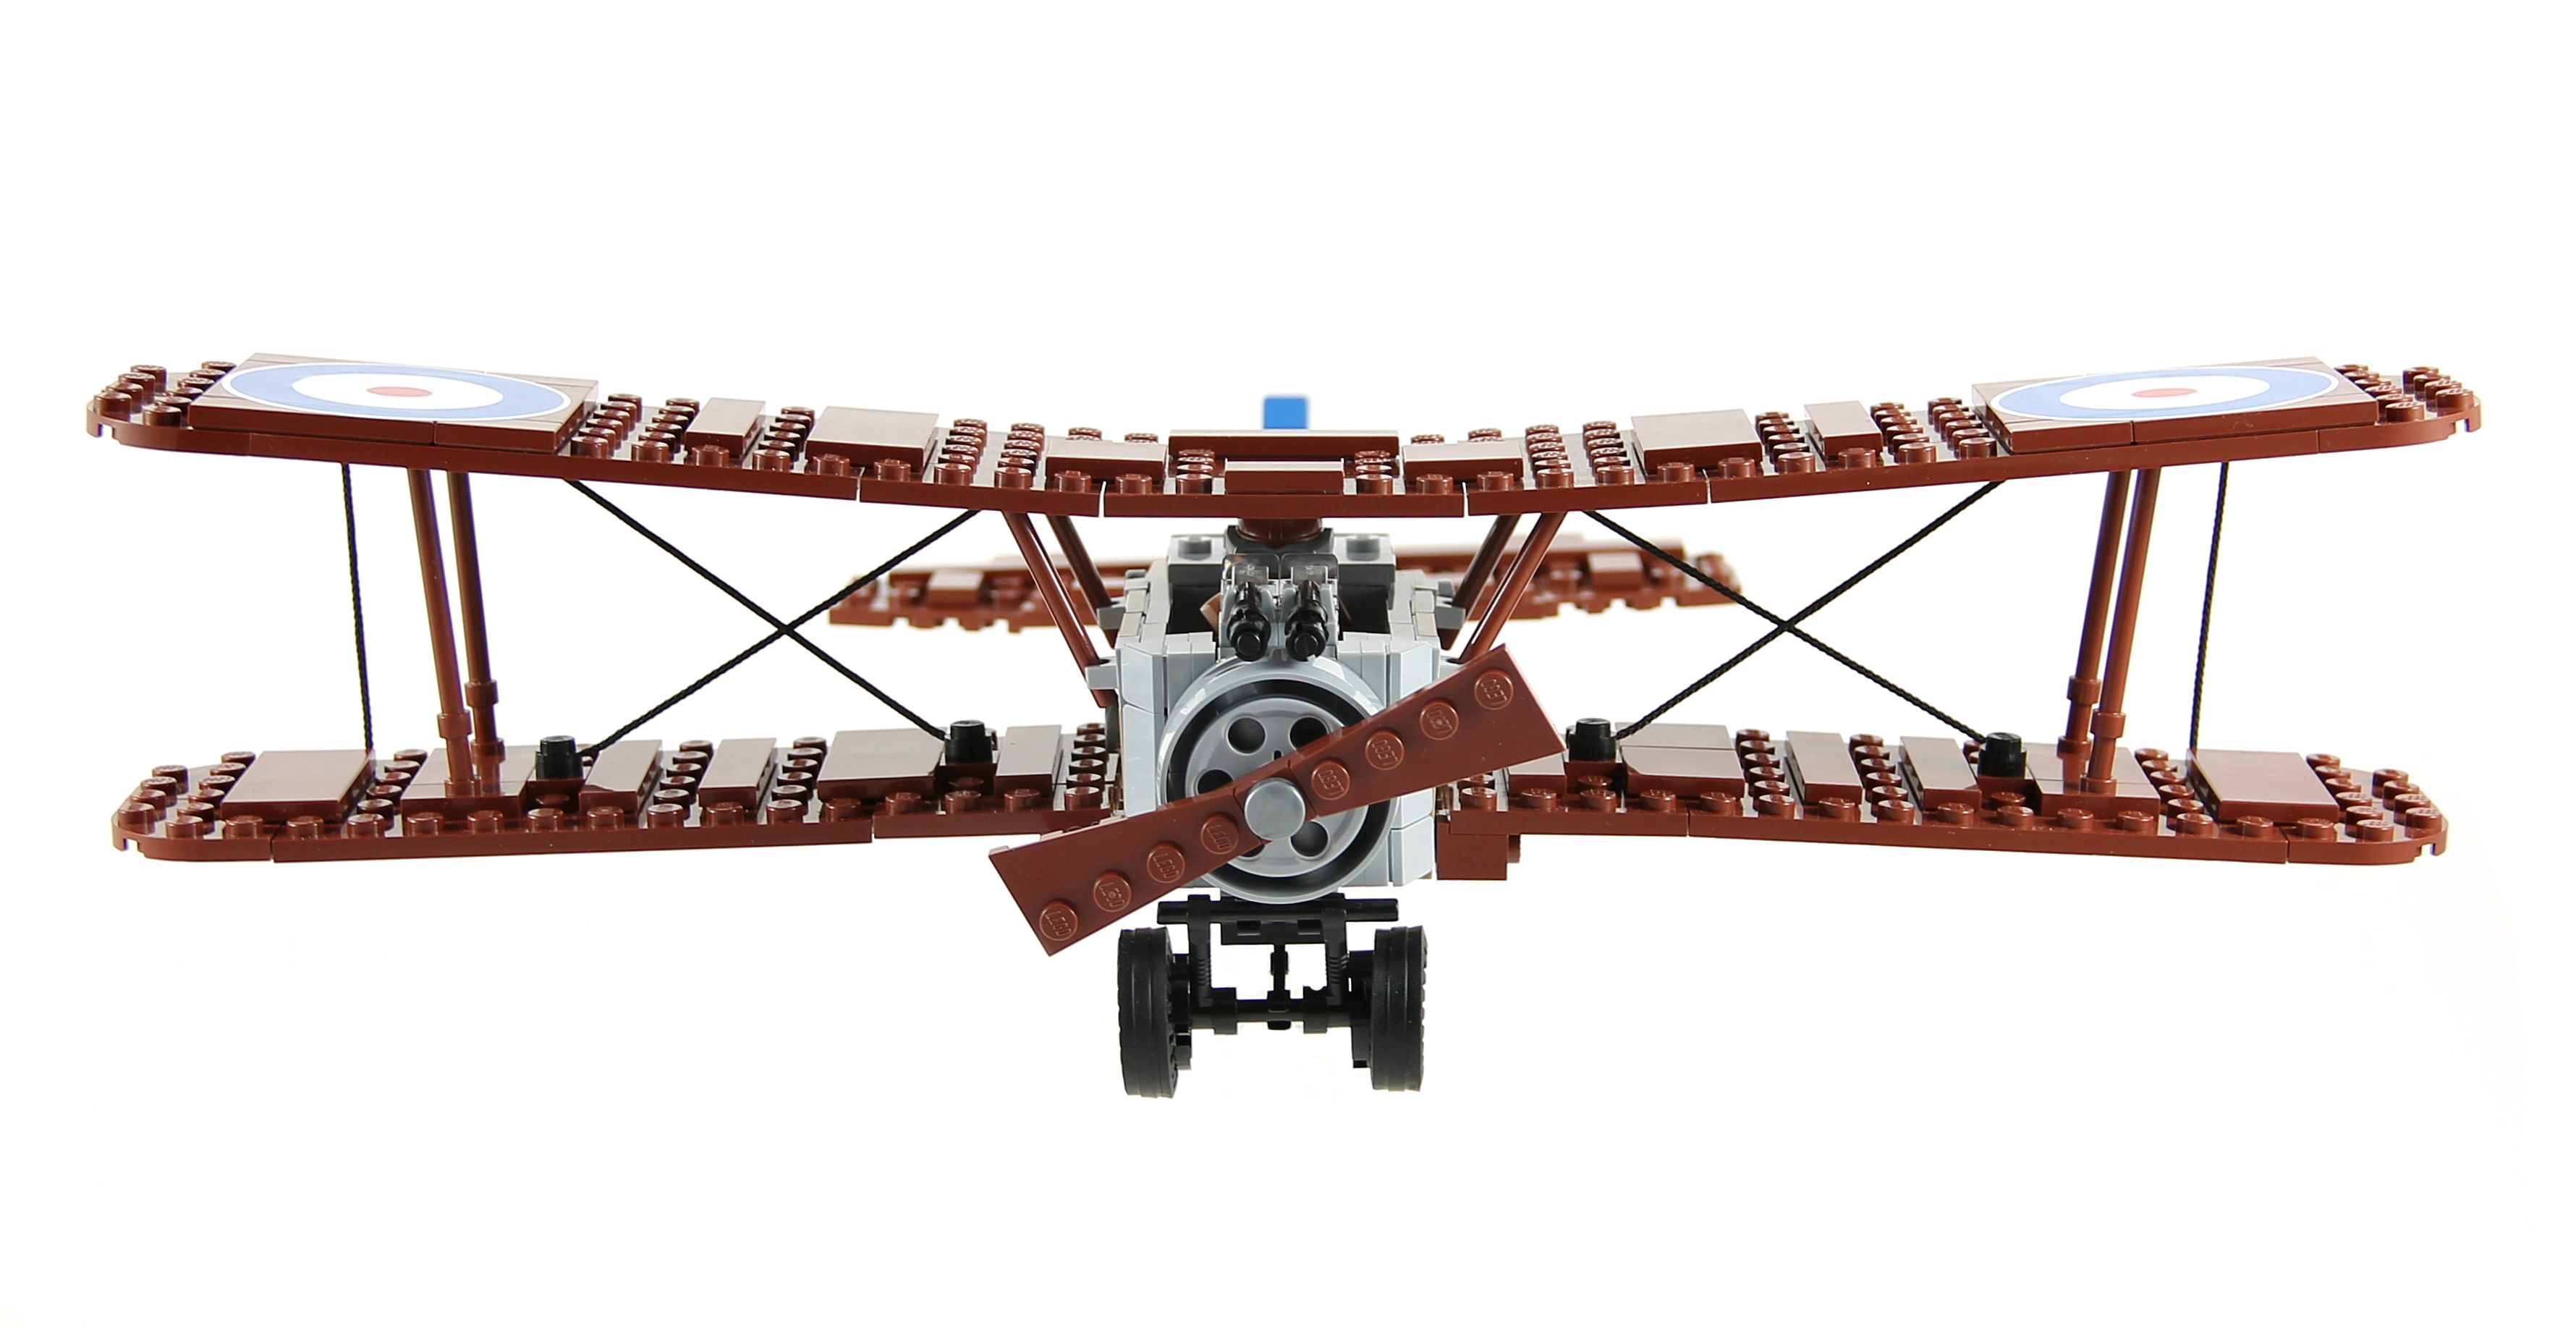 2-sopwith_camel-front_view.jpg